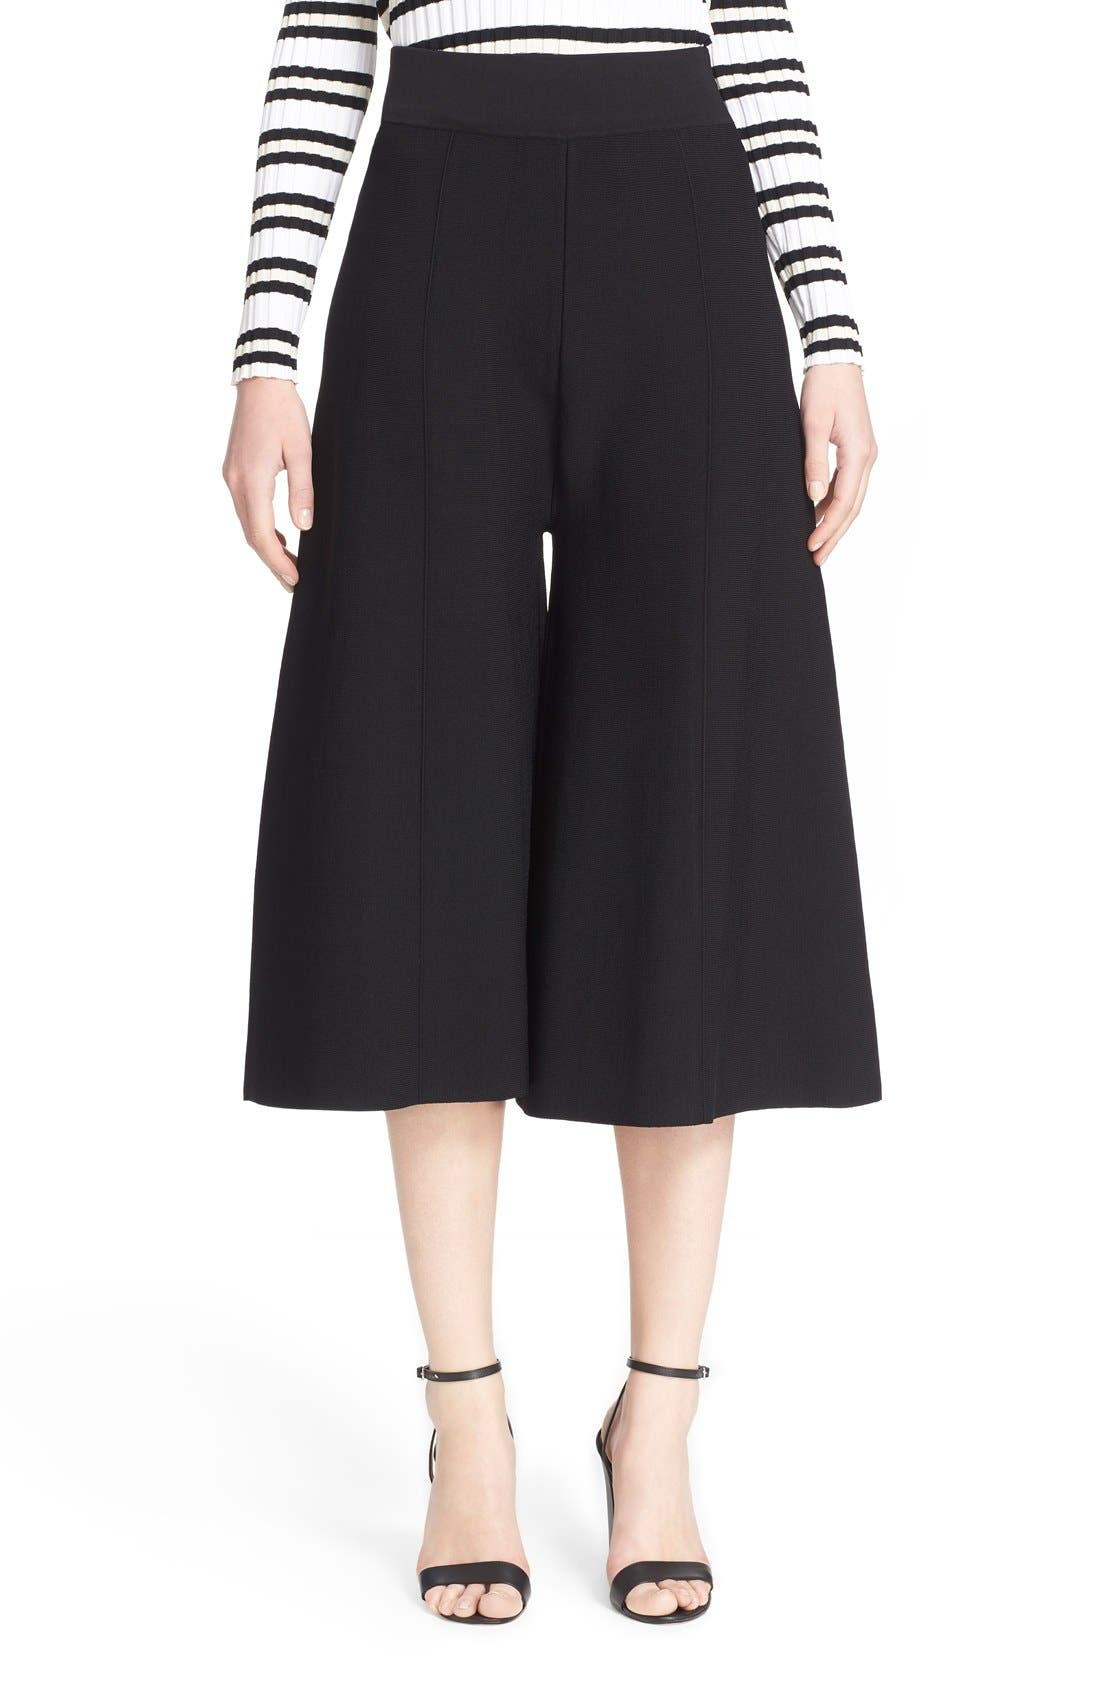 MILLY, Knit Culottes, Main thumbnail 1, color, 001